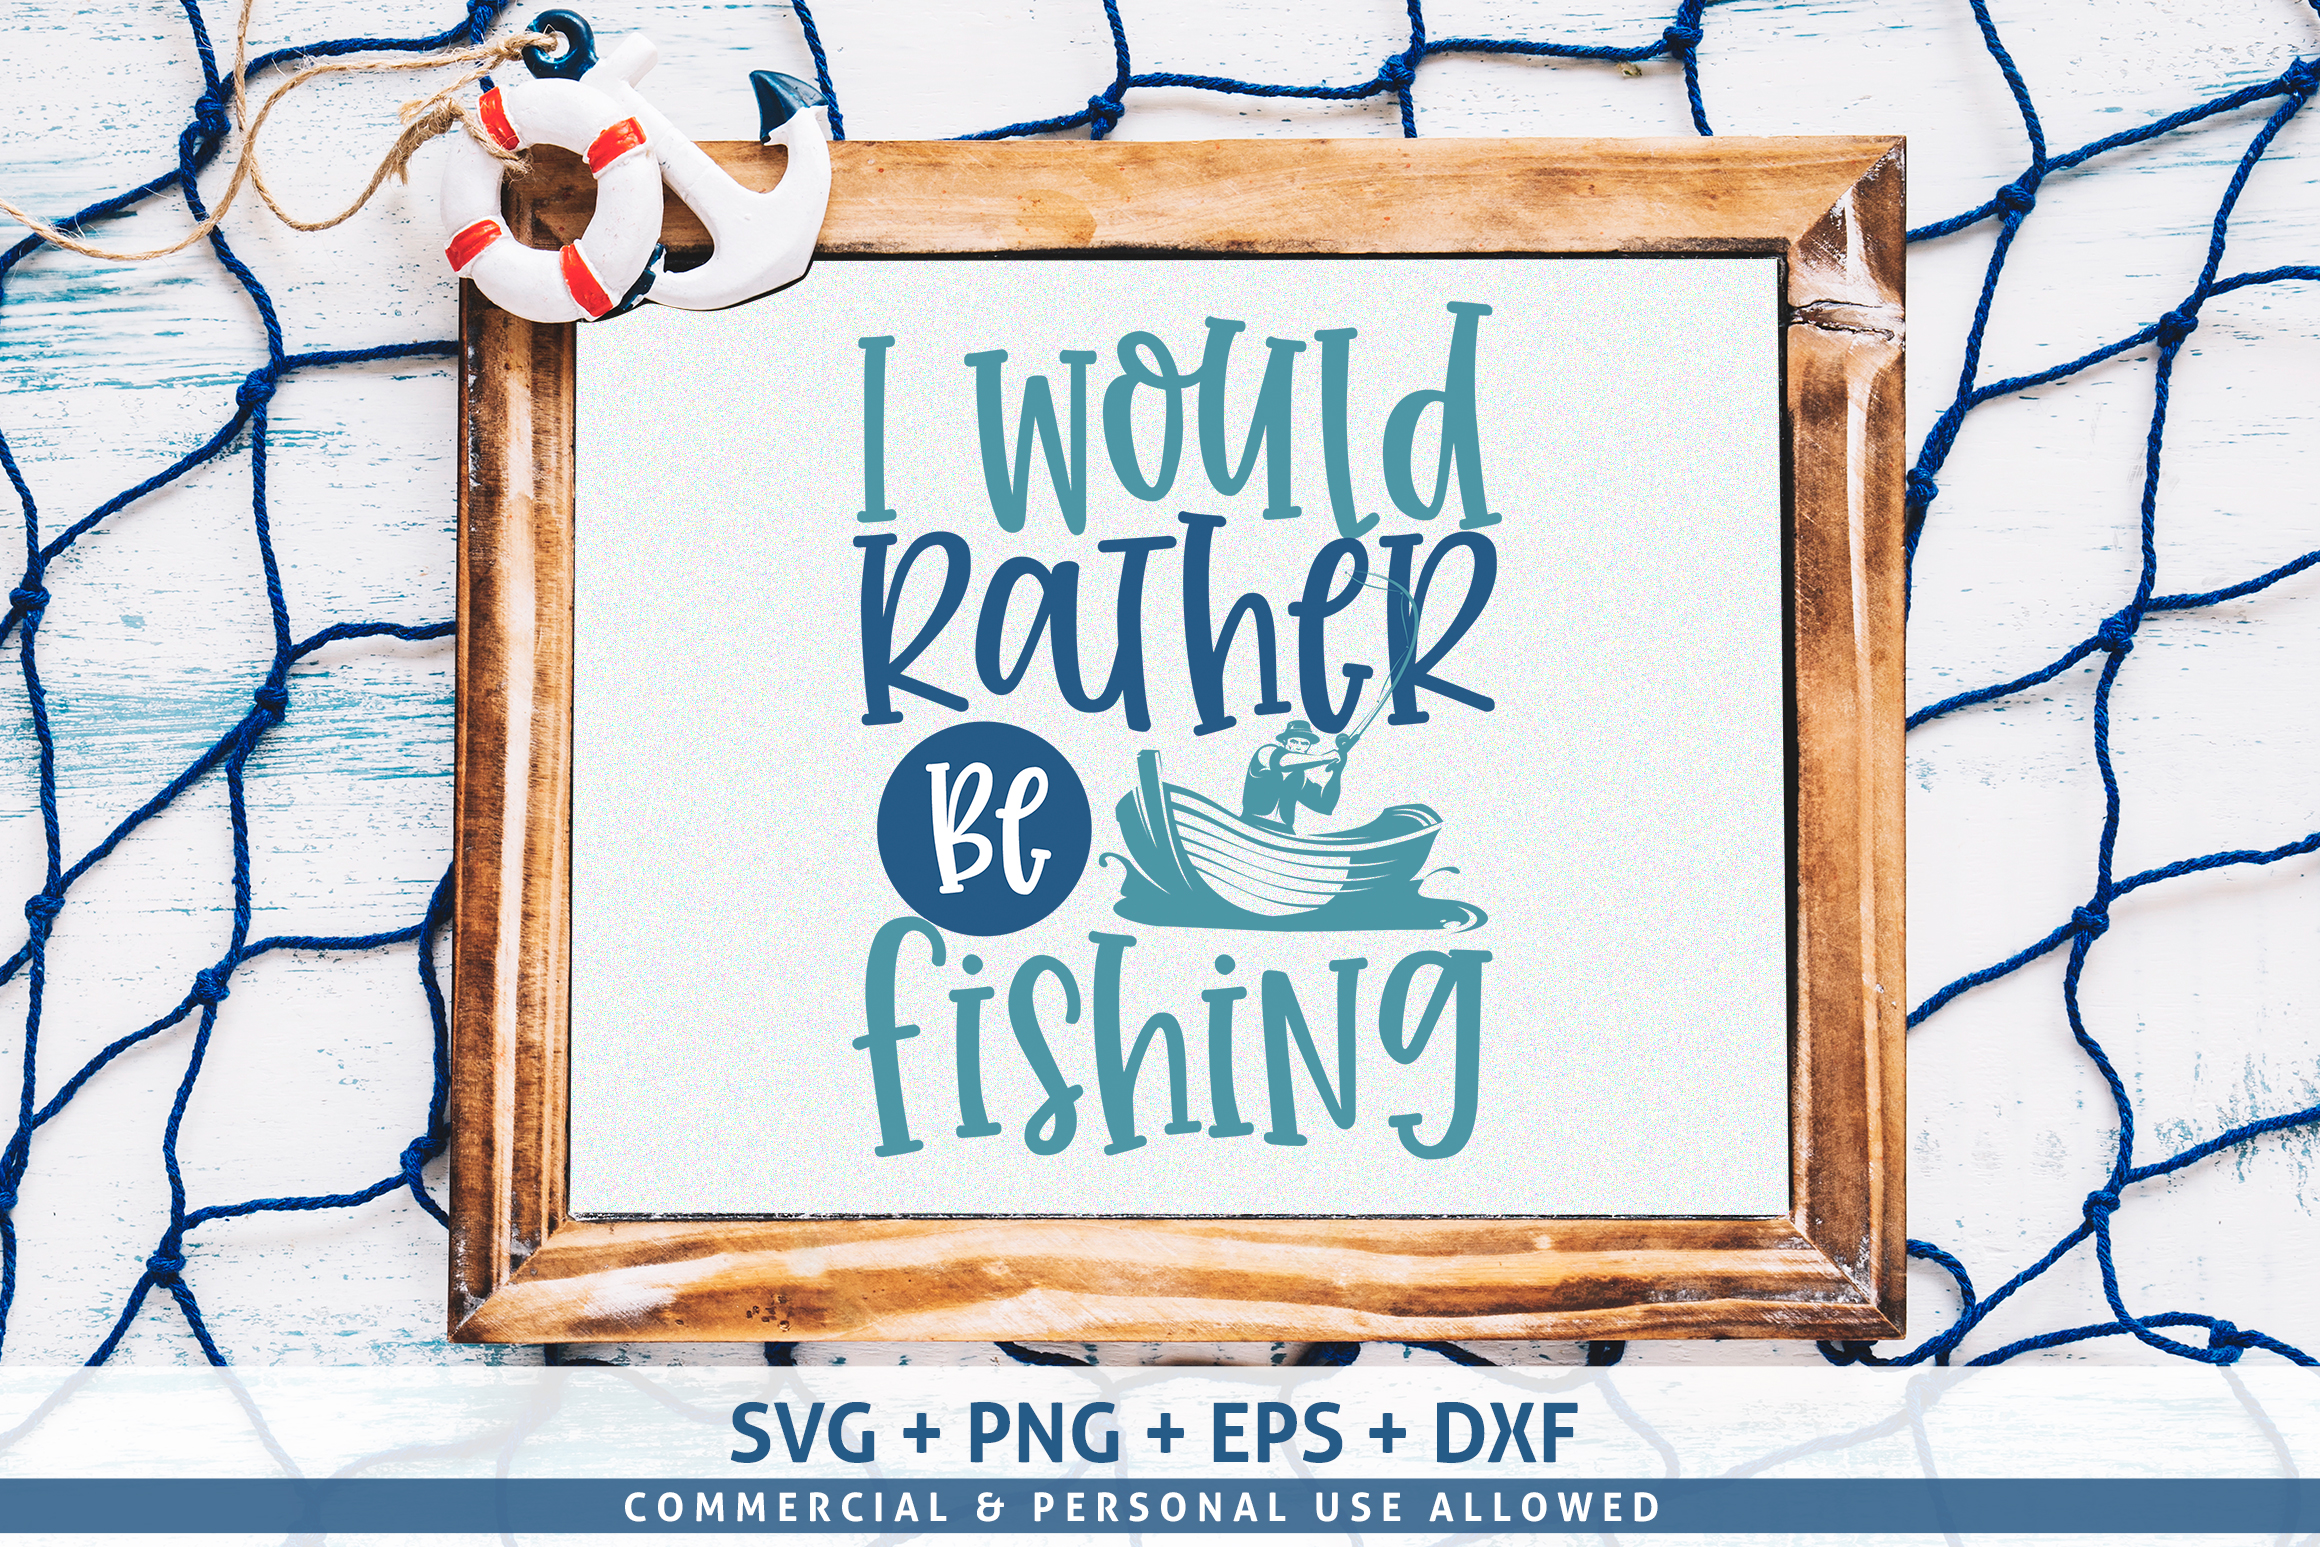 I would rather be fishing SVG example image 1